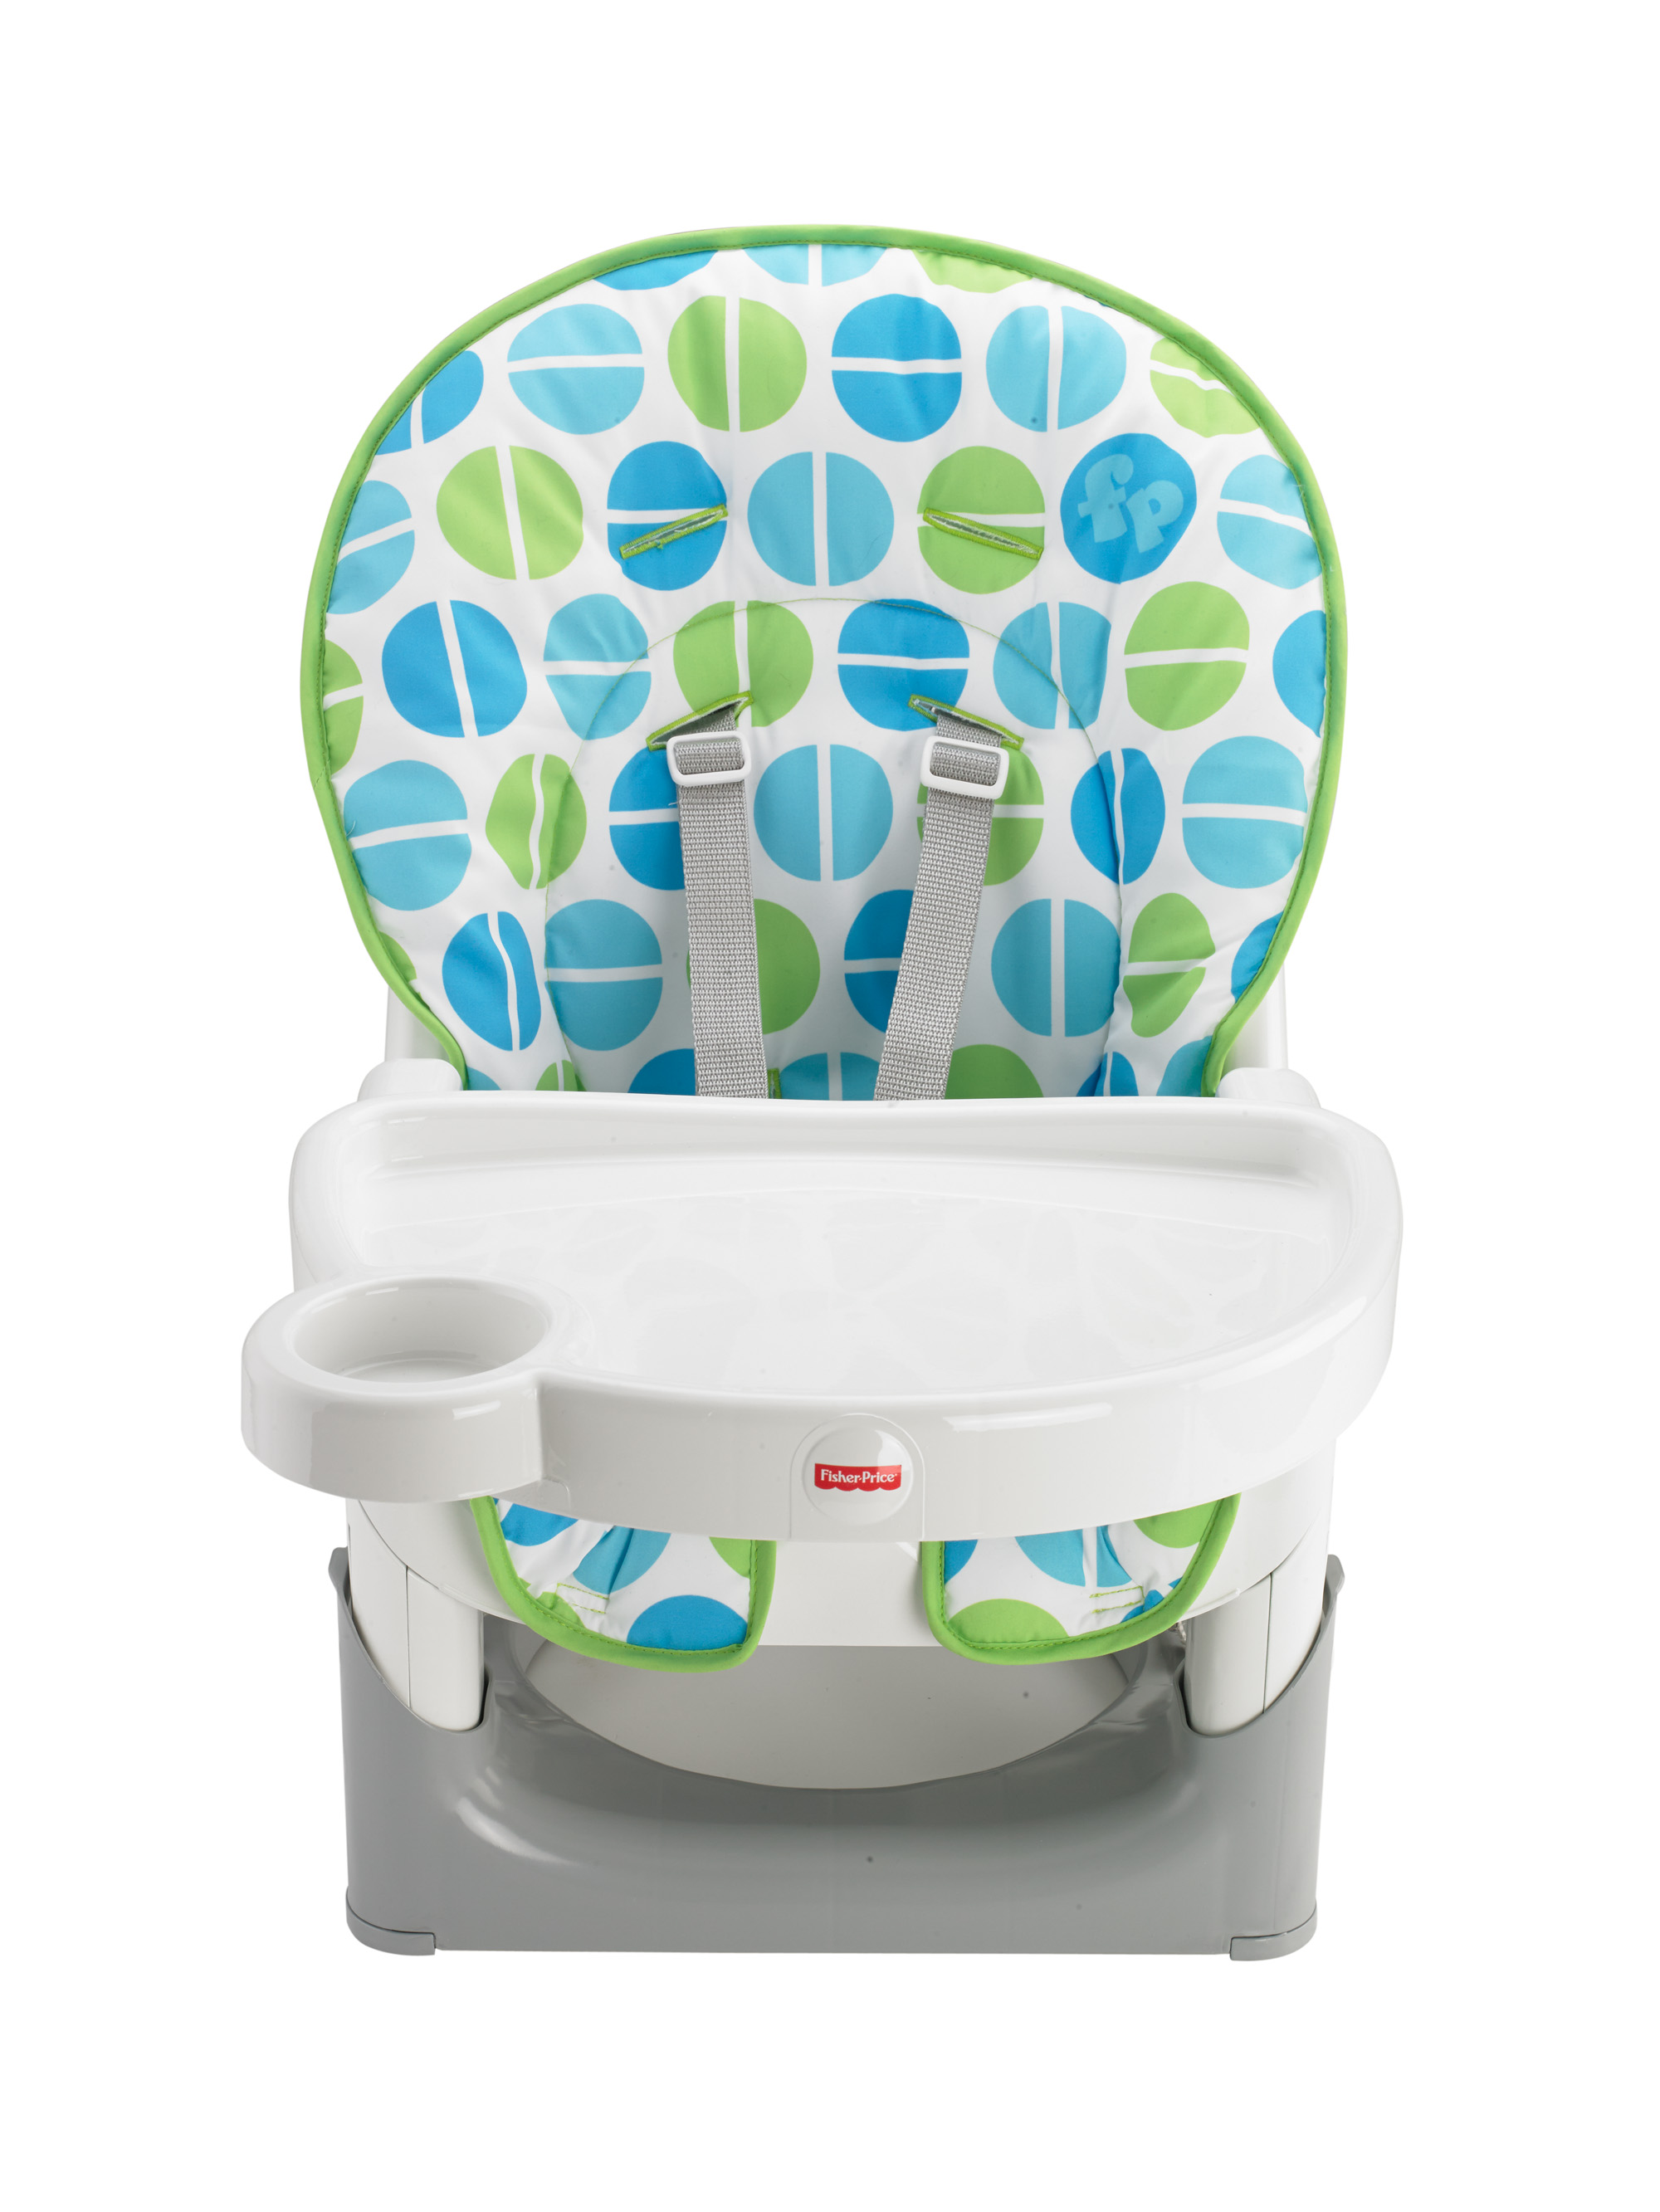 WhyStockIt Fisher Price SpaceSaver High Chair